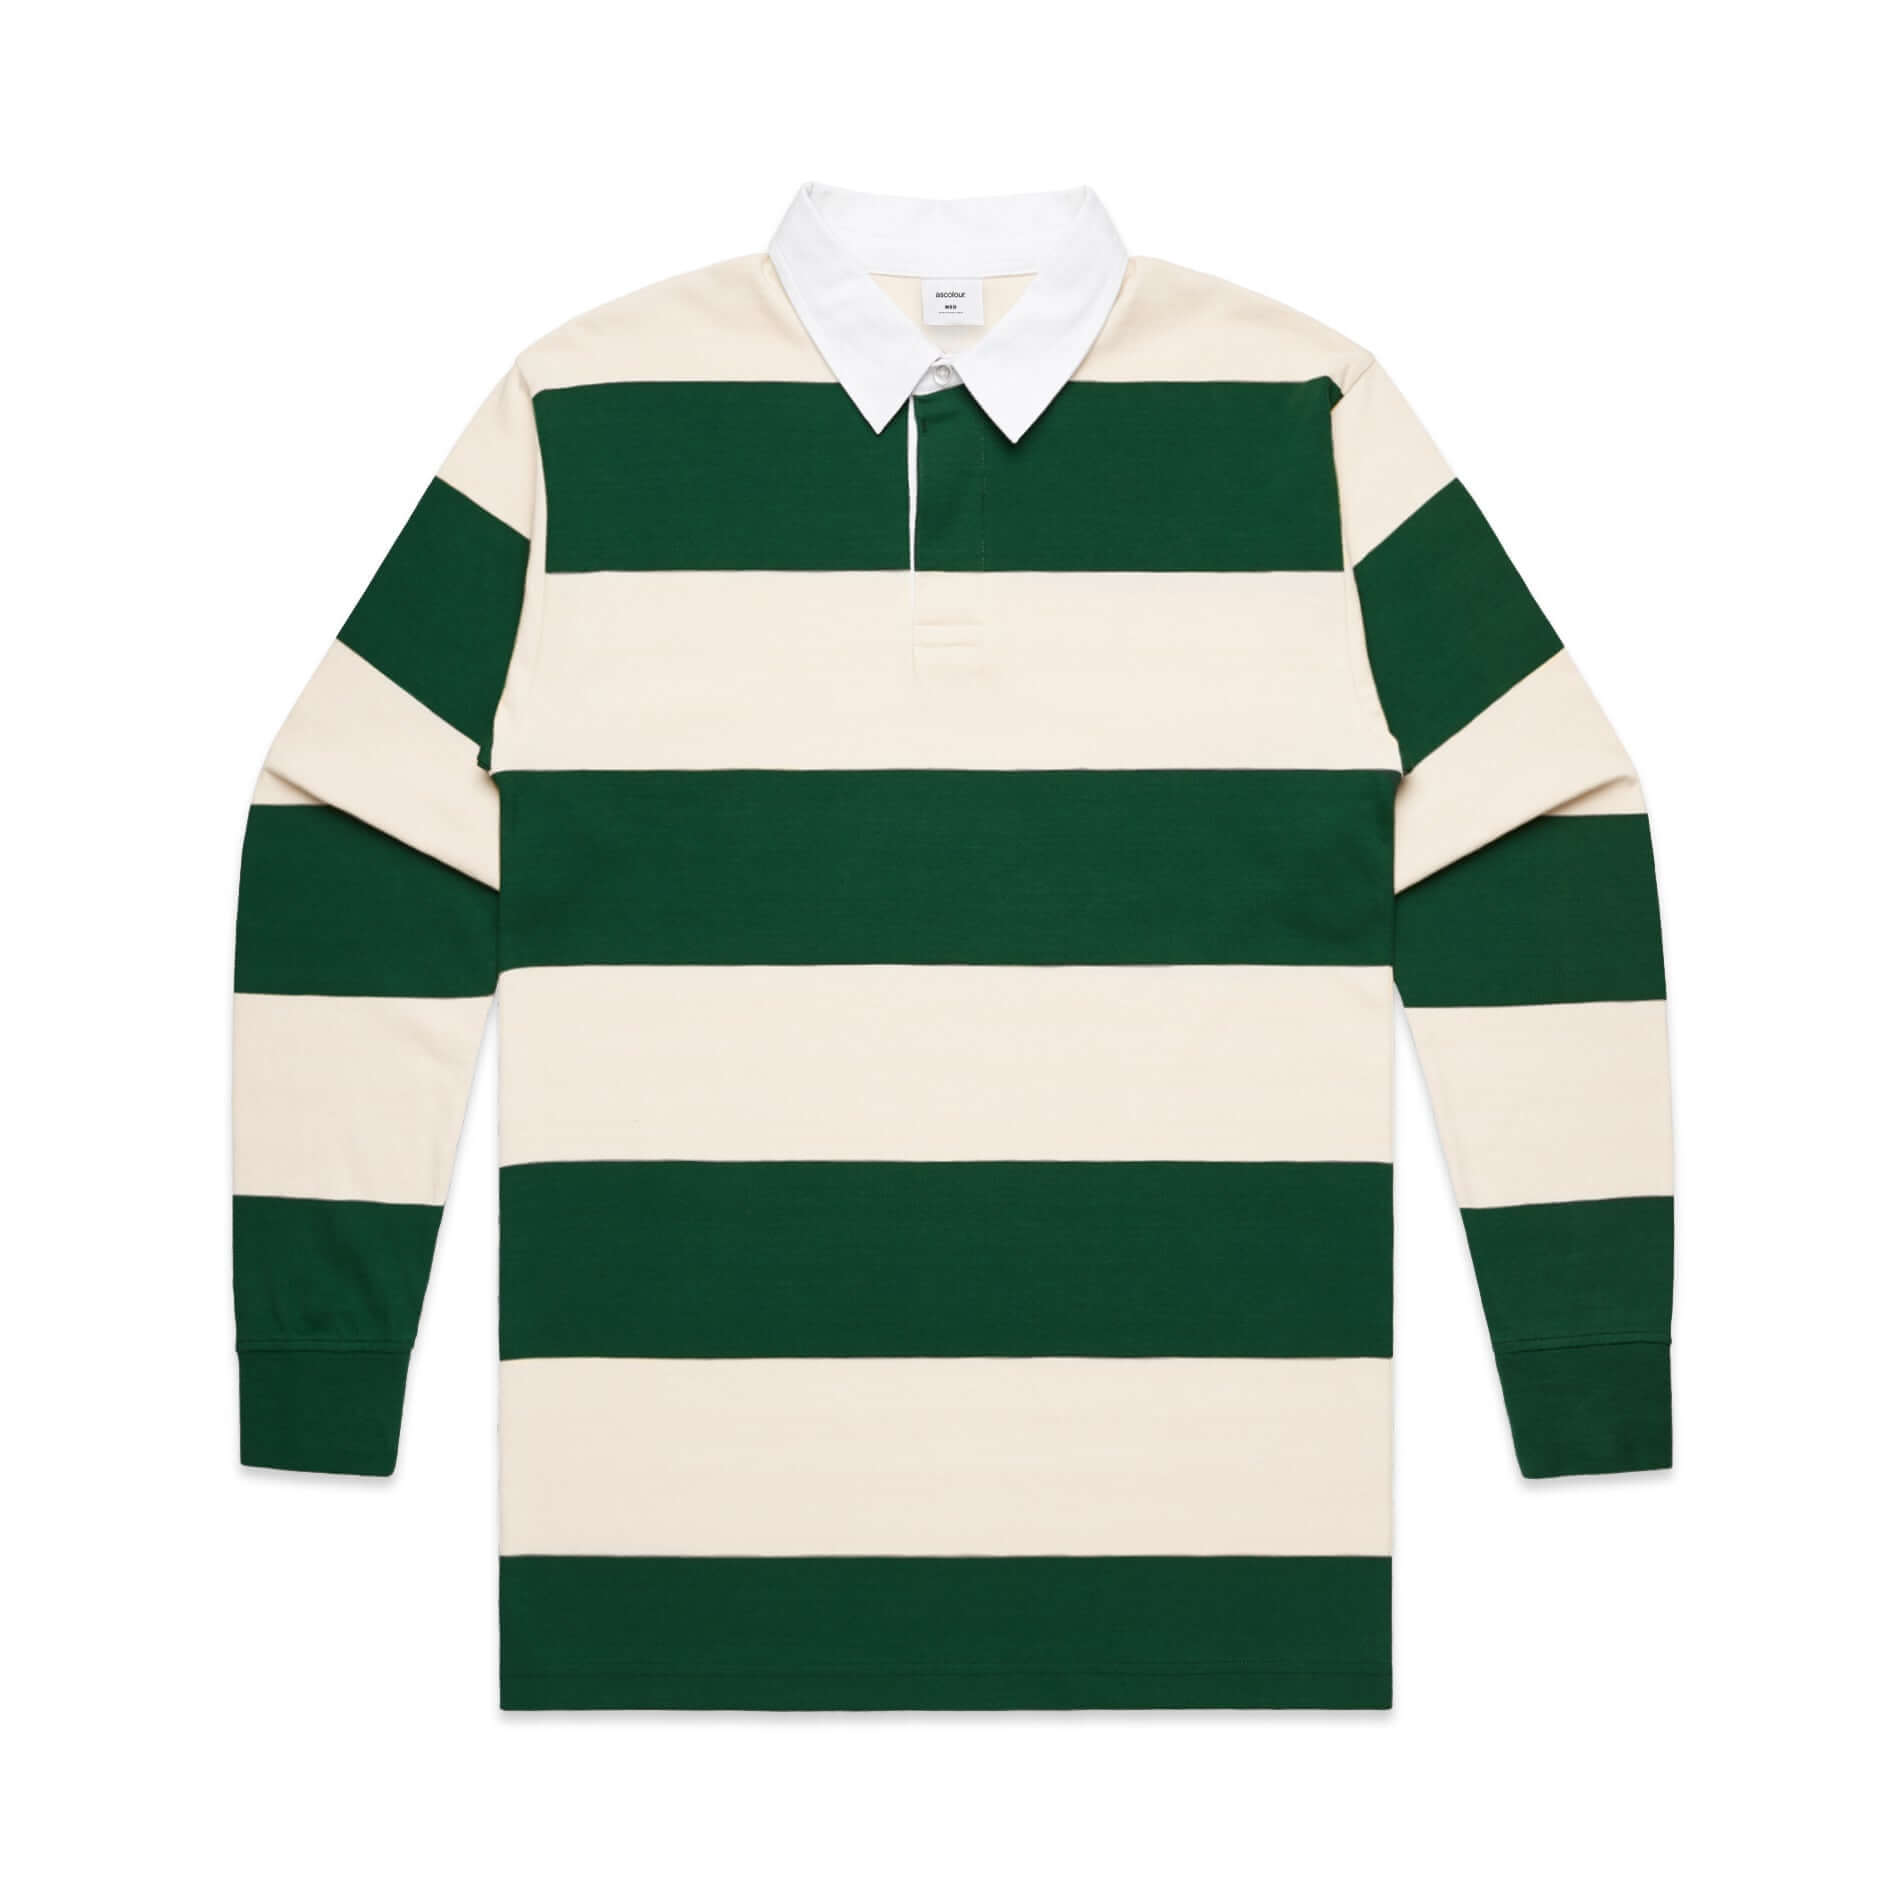 AS Colour RUGBY JERSEY - Green/White